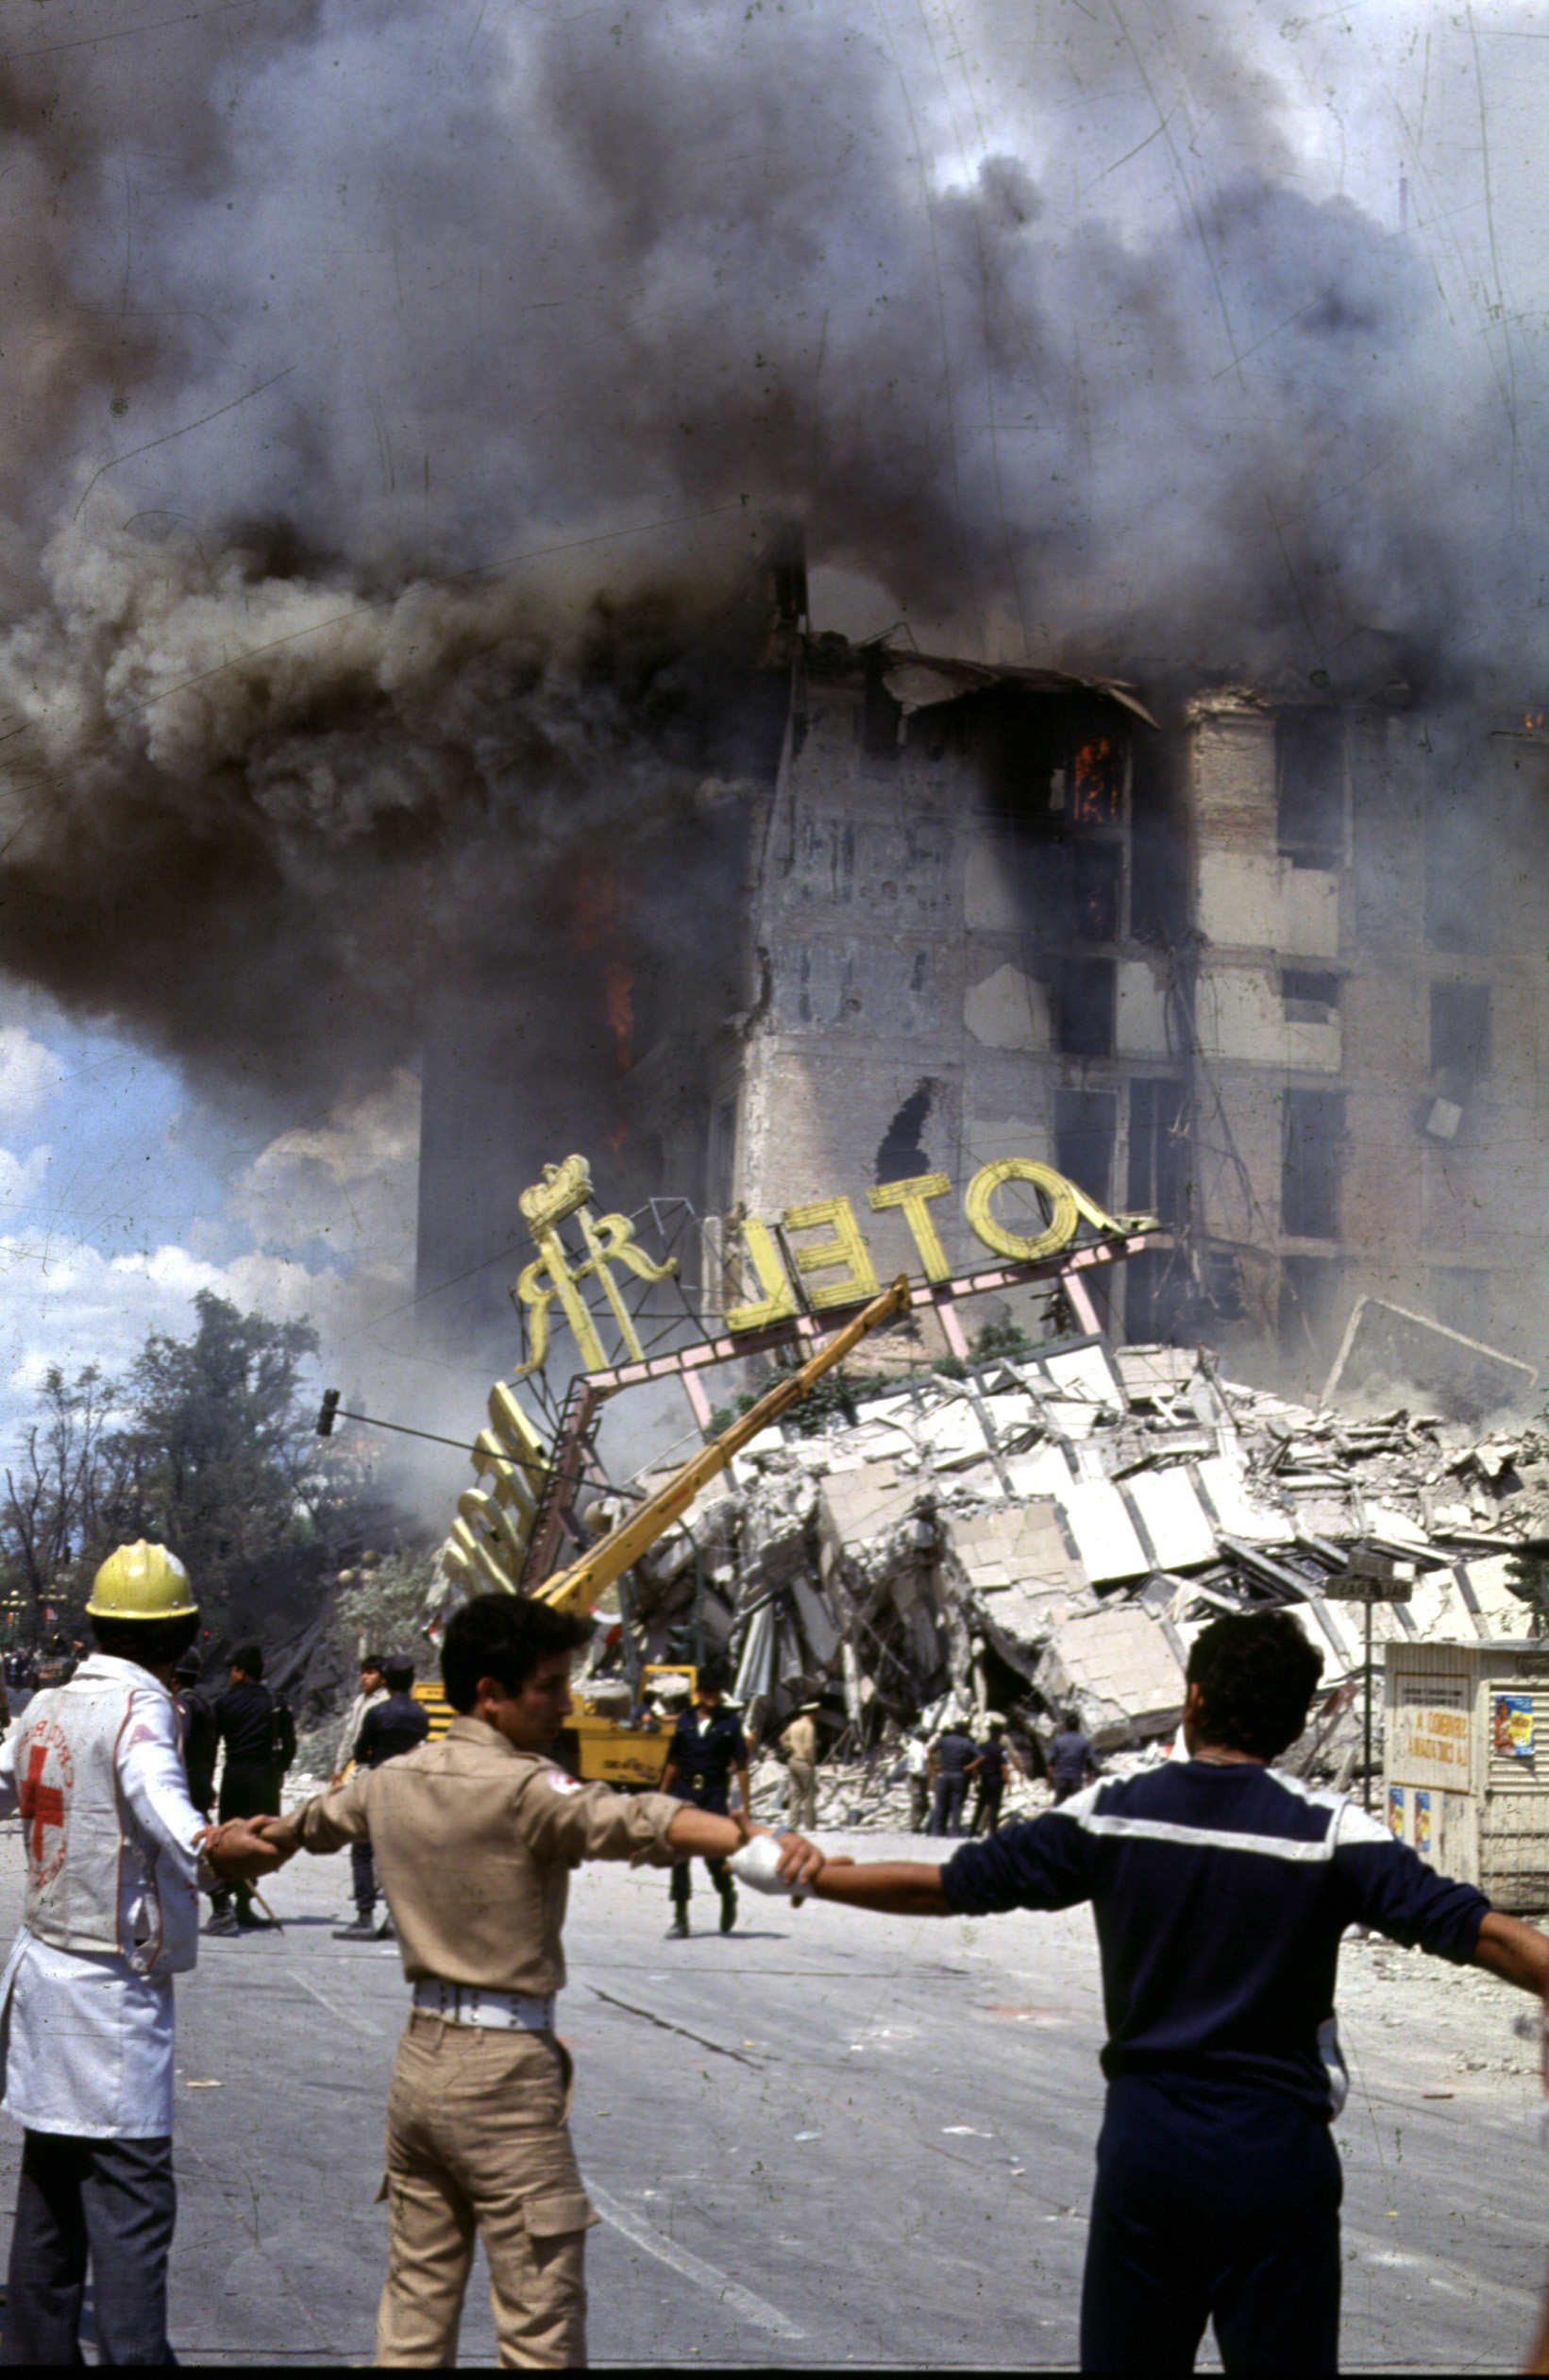 People join hands around the Regis Hotel which collapsed in the massive earthquake on Sept. 19, 1985, in Mexico City. Mexico City is marking the 20th anniversary of the massive 1985 earthquake that killed at least 9,500 people as it leveled whole sections of the city.(KEYSTONE/AP Photo/Jesus Villaseca) ** ONE TIME USE ONLY. . . MANDATORY CREDIT **